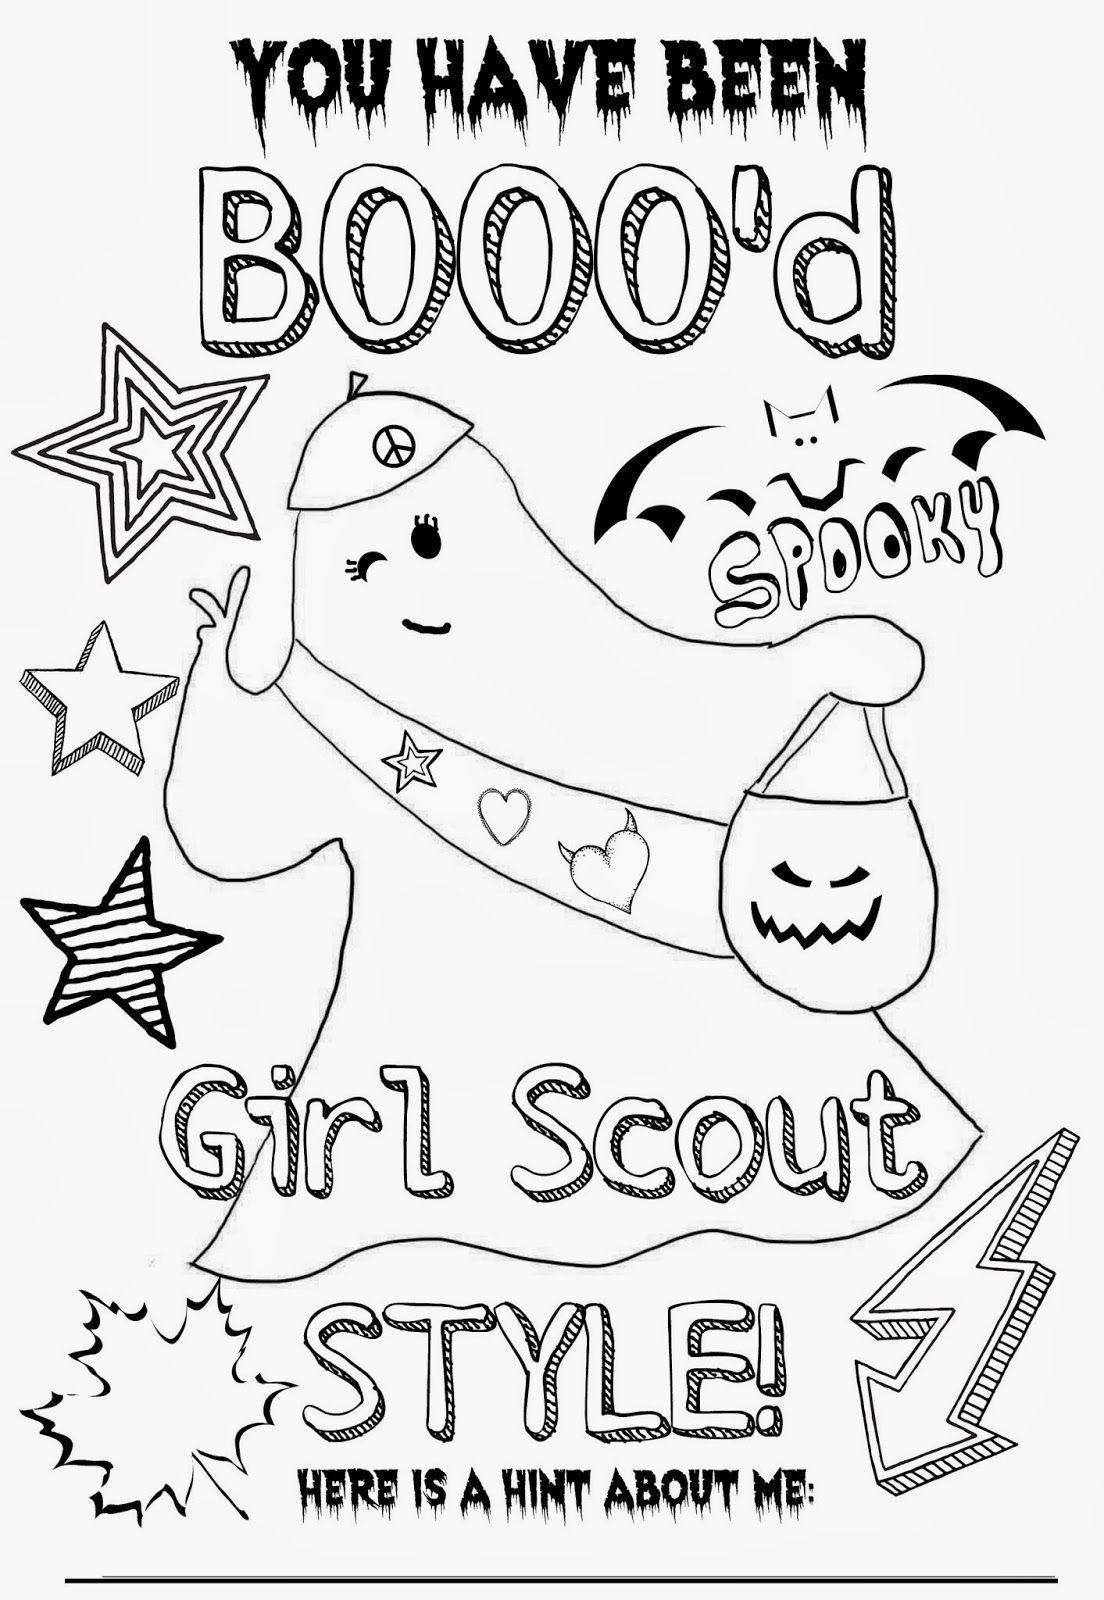 Muraco Girl Scout Troop 65235: You have been BOOO'd